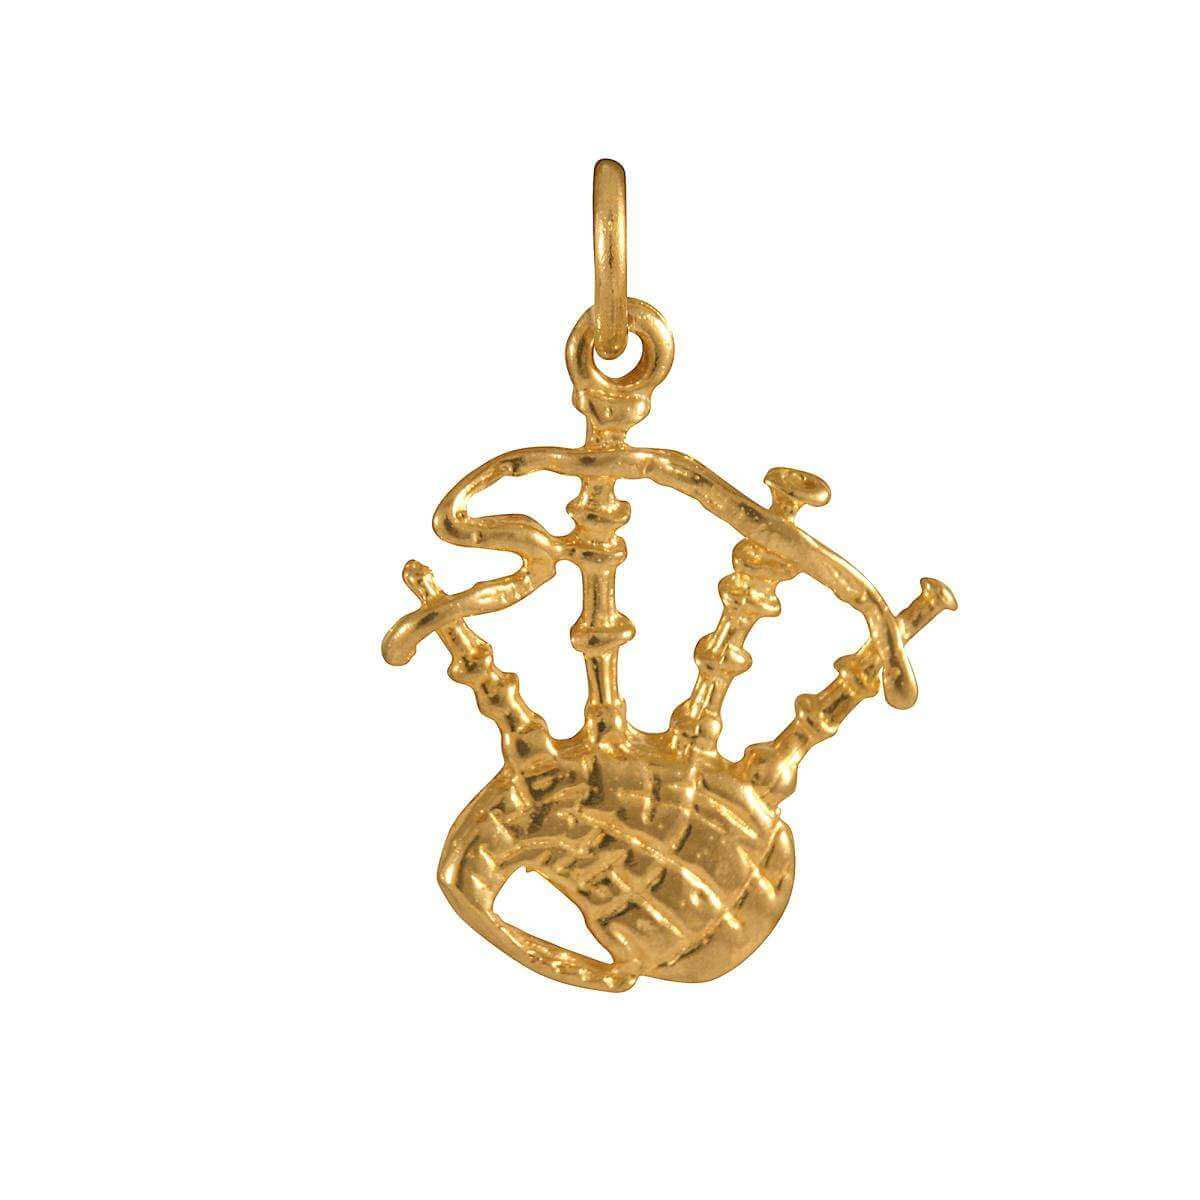 9ct Gold Bagpipes Charm